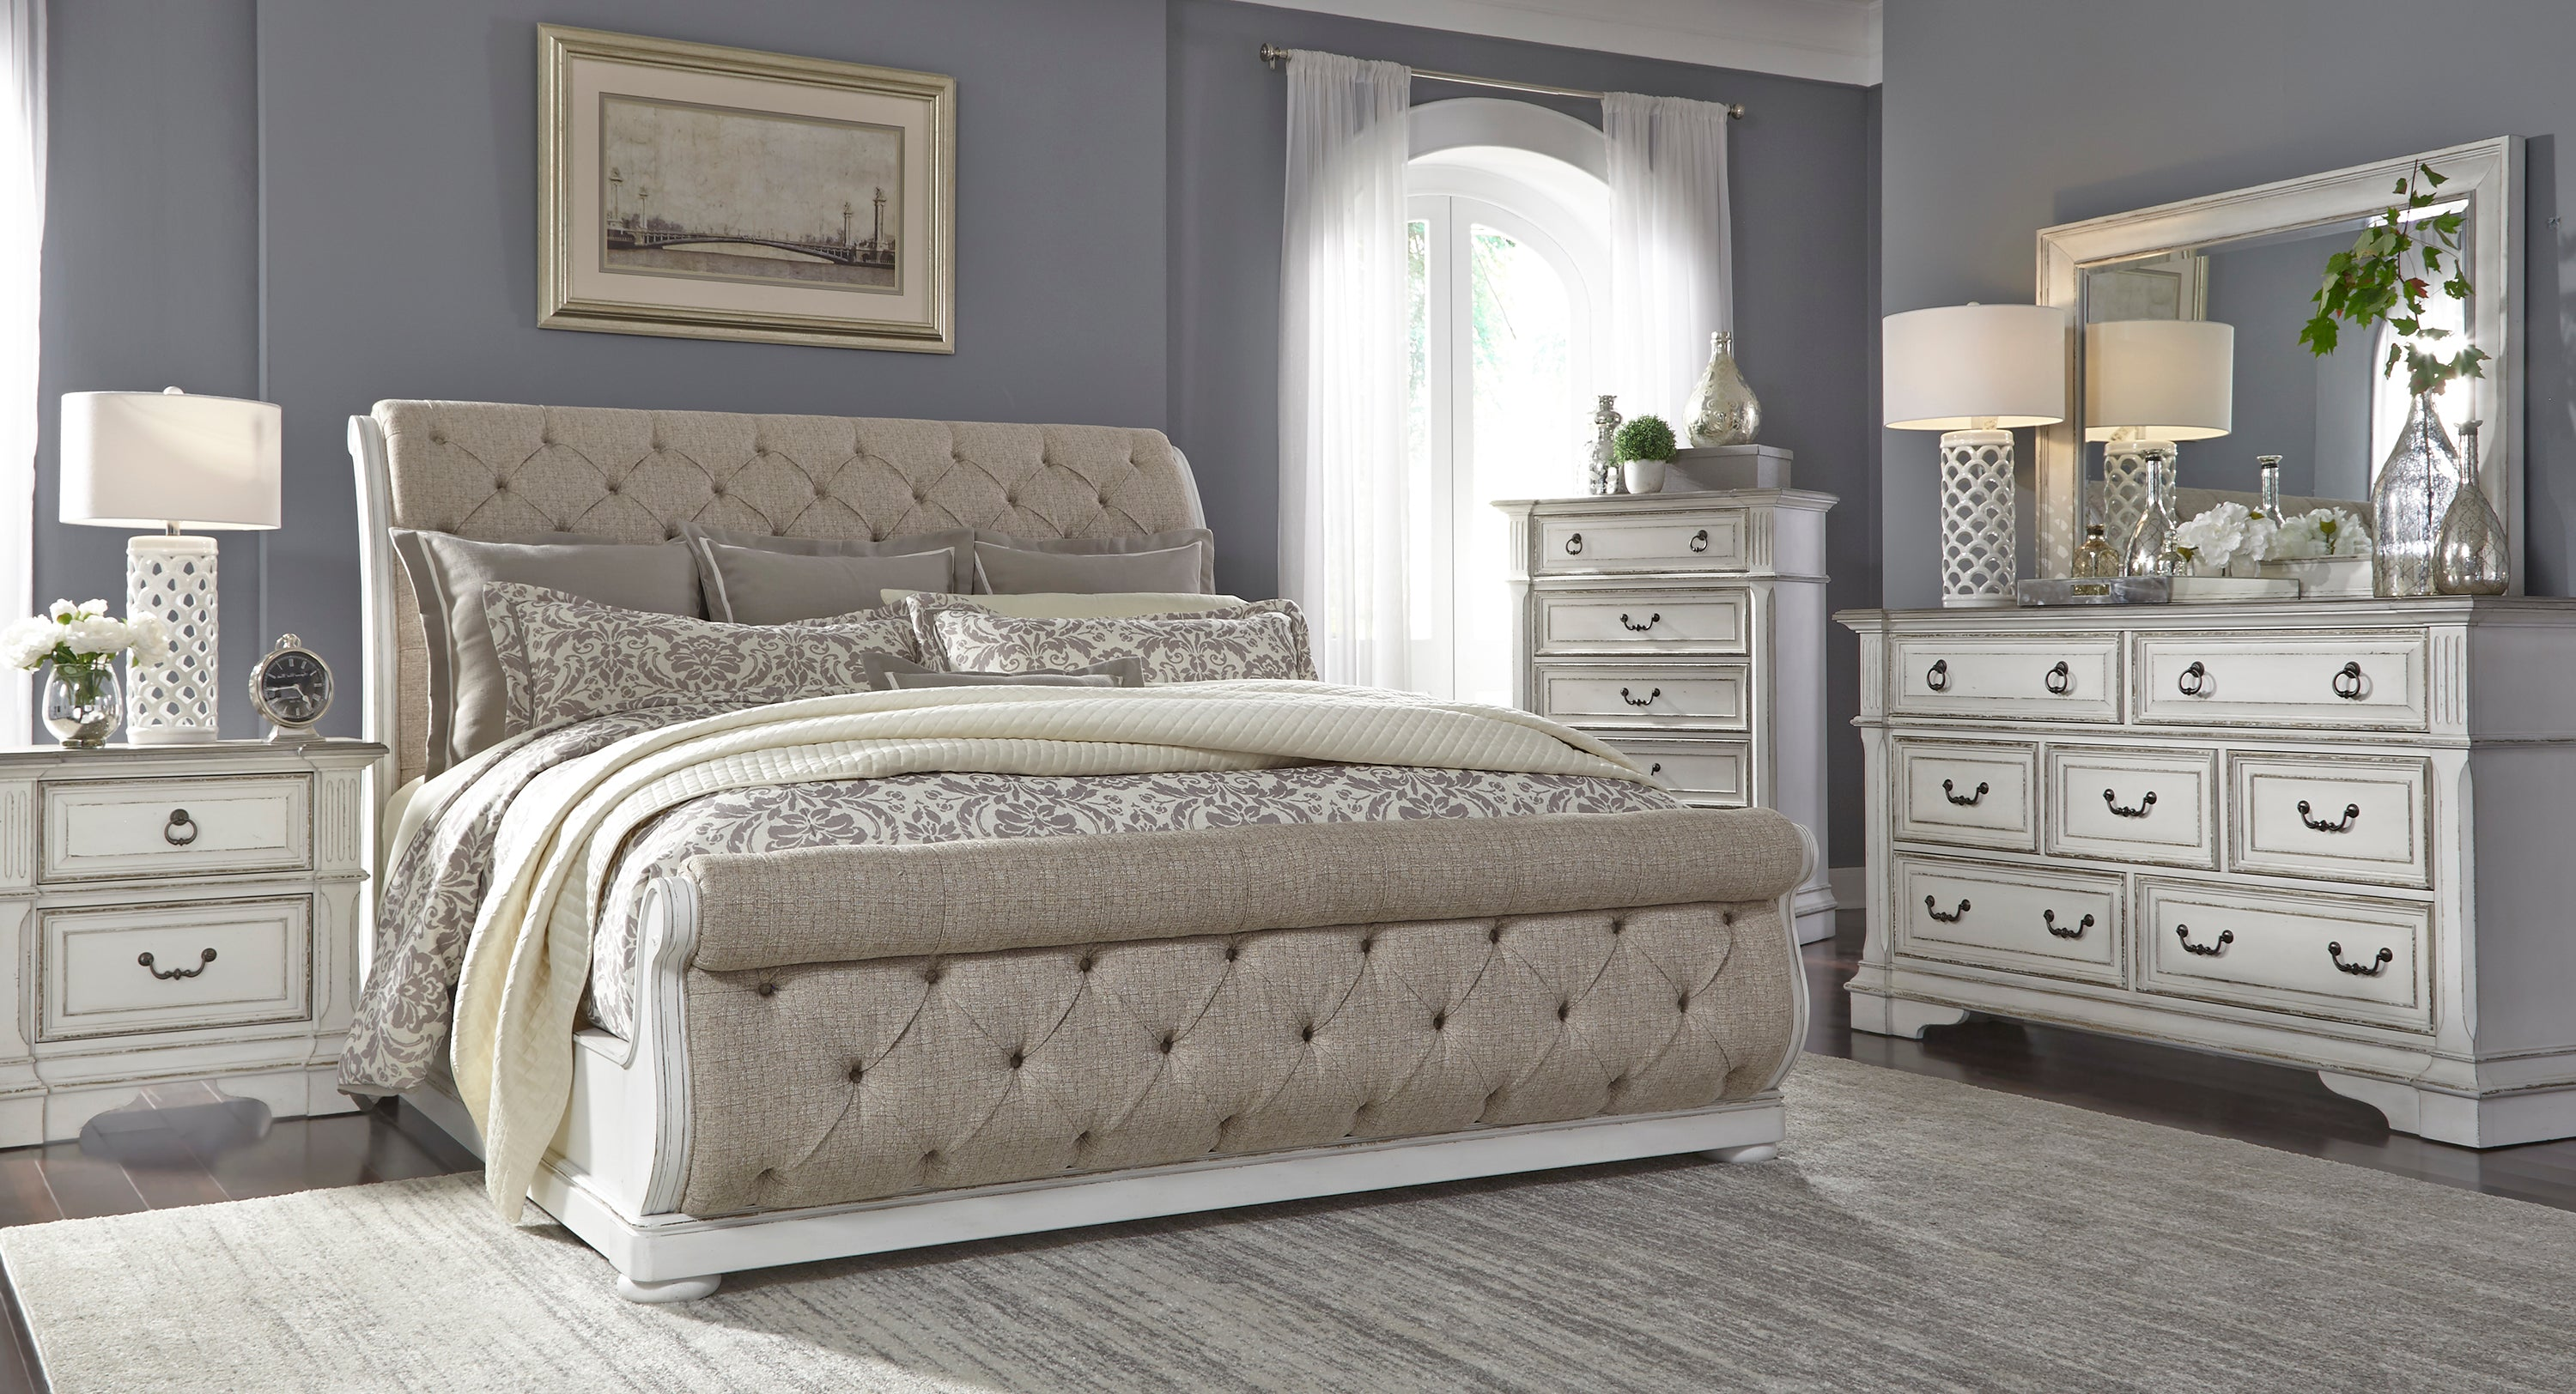 - Abbey Park 5 Piece King Upholstered Sleigh Bedroom - Kane's Furniture